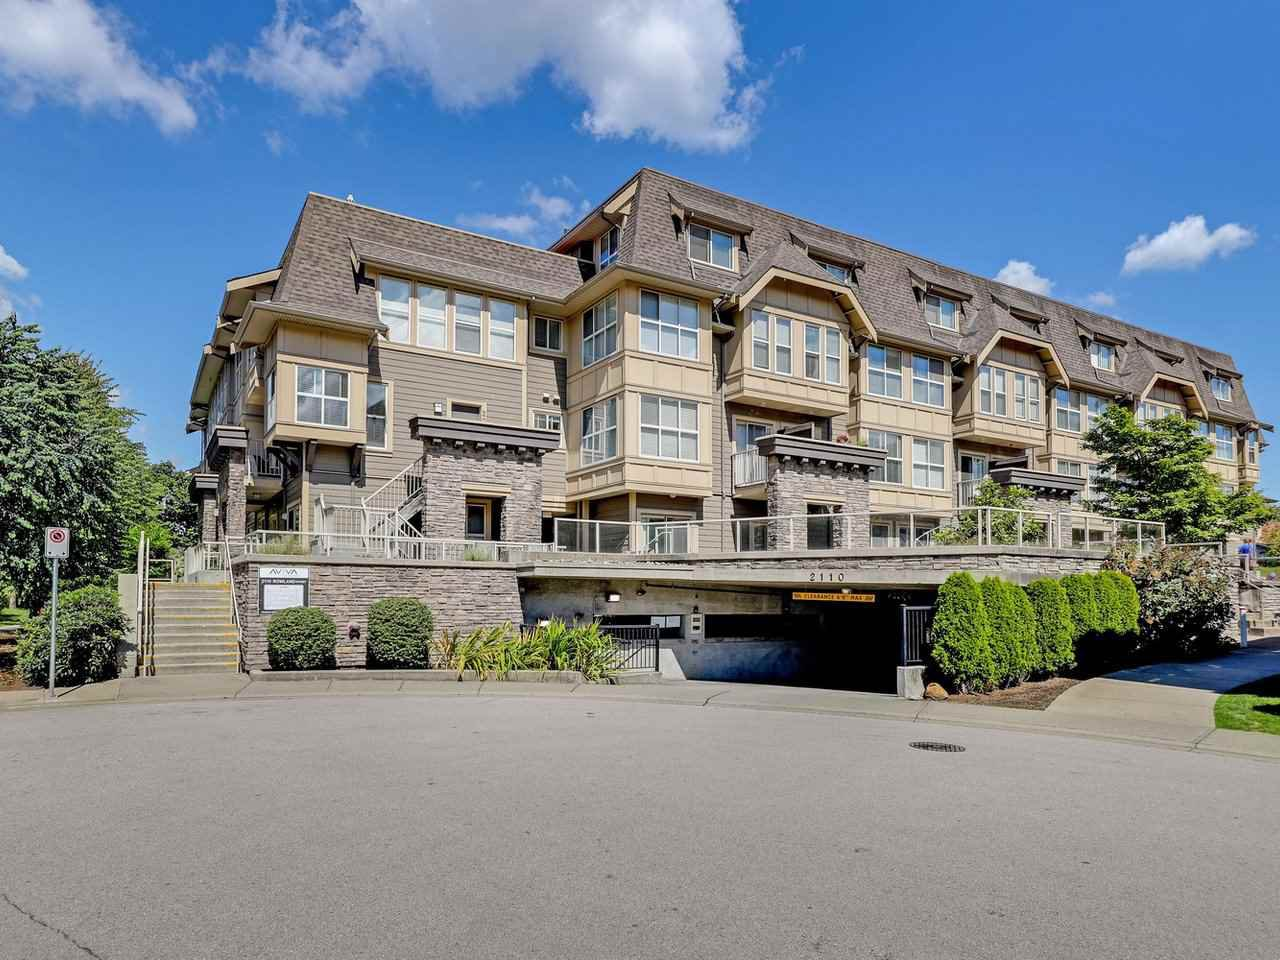 Main Photo: 114 - 2110 Rowland St in Port Coquitlam: Central Pt Coquitlam Condo for sale : MLS®# R2500858